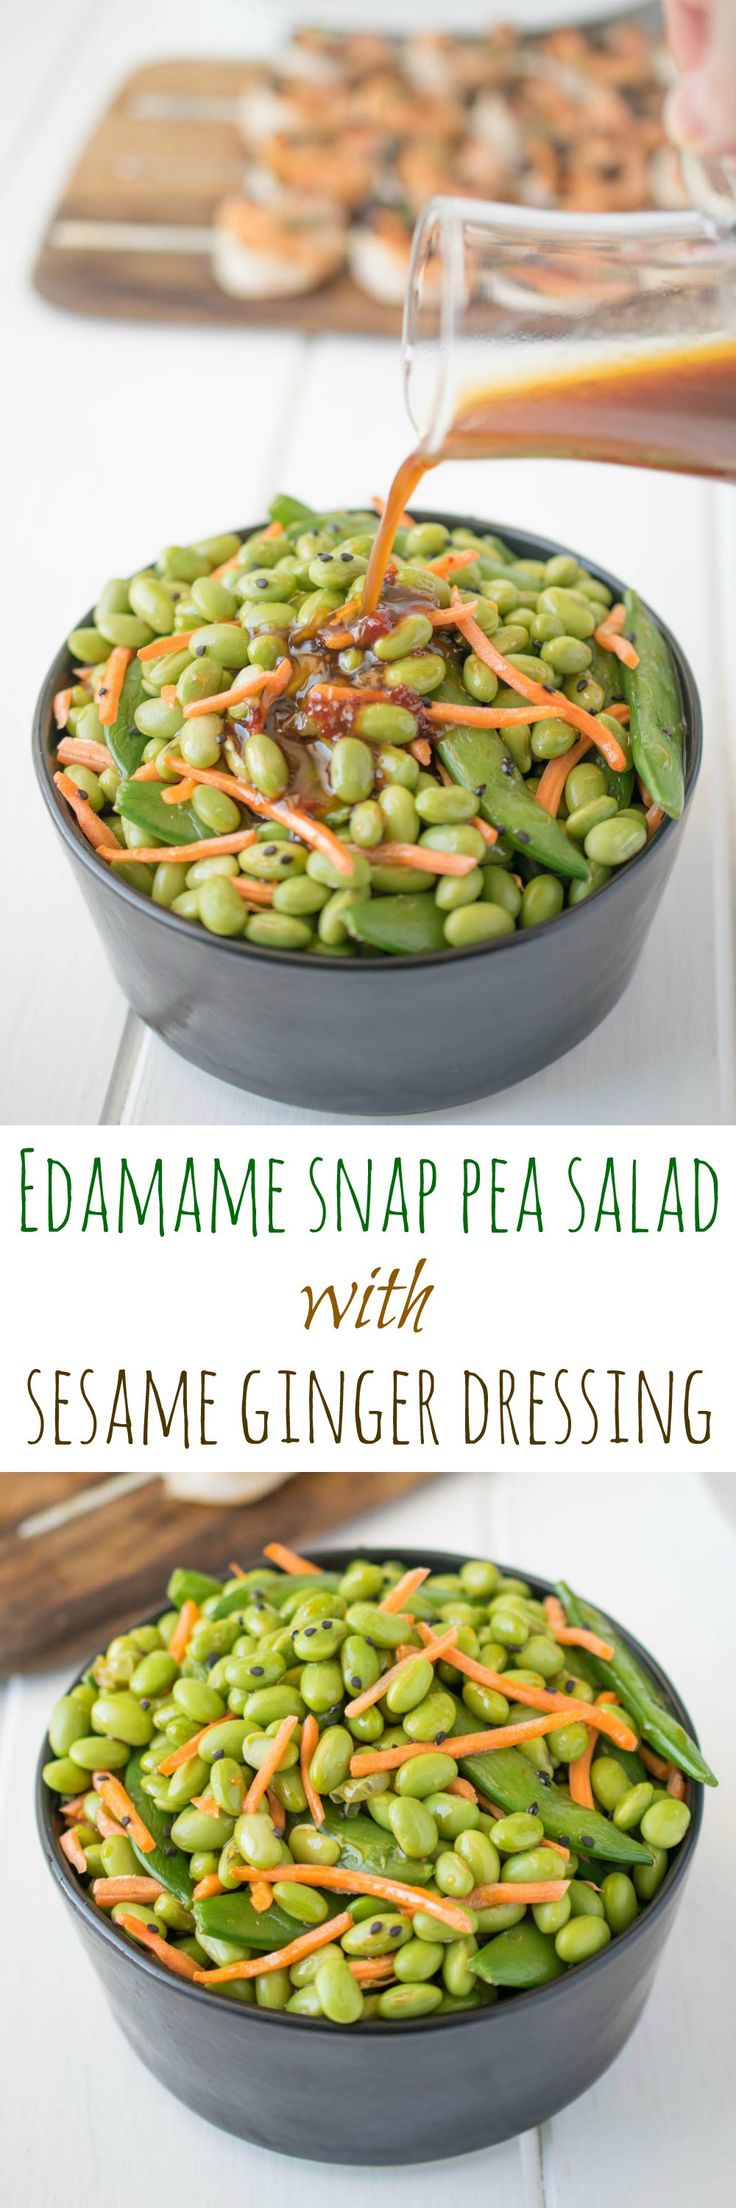 Edamame snap pea salad with sesame ginger dressing